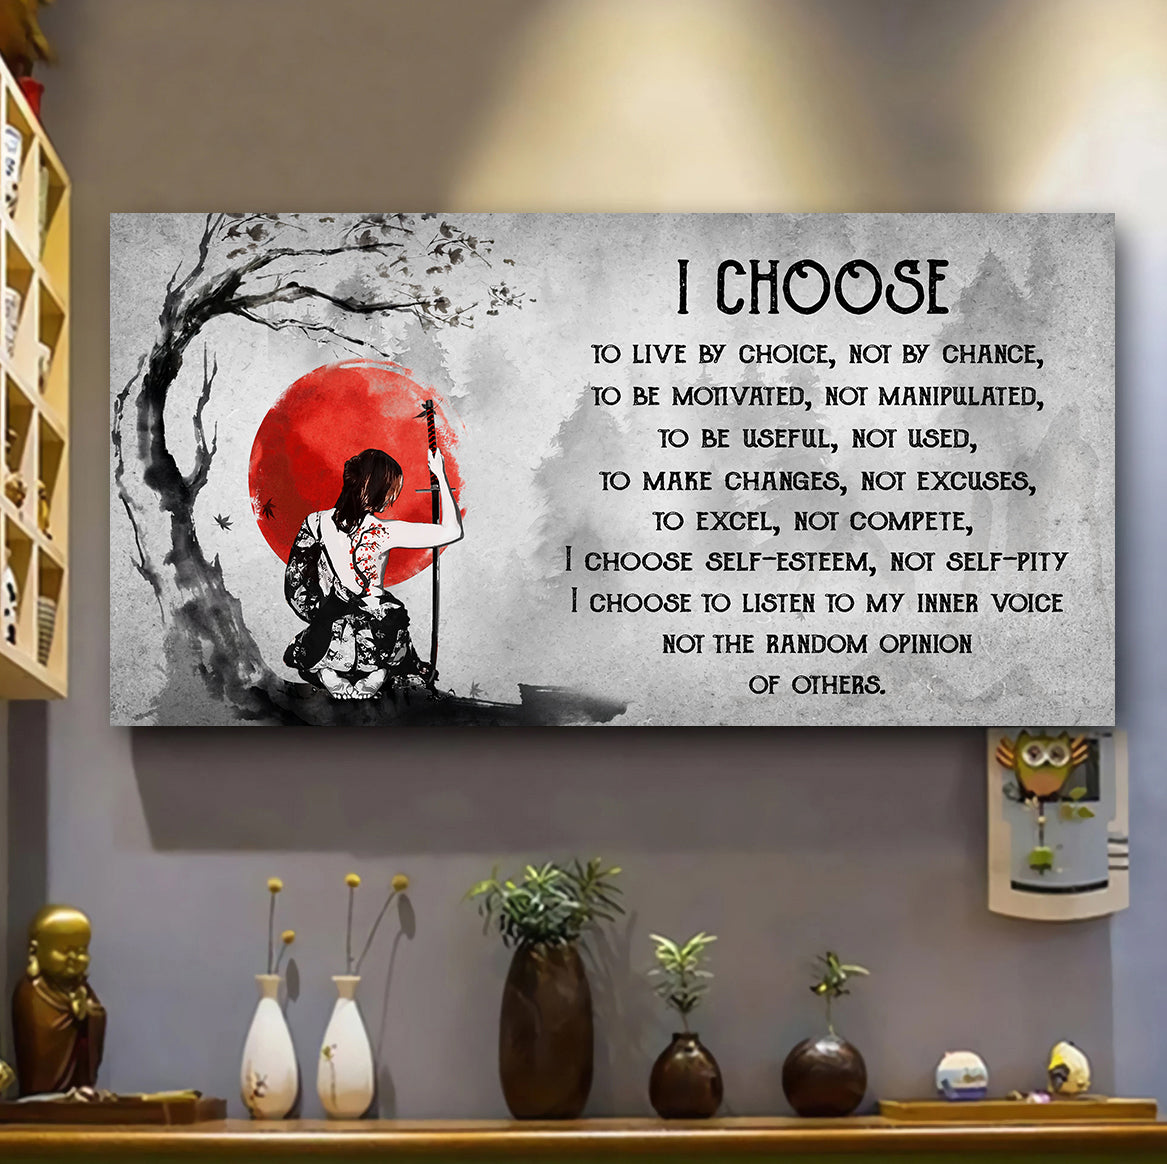 (H850) Customizable samurai poster - I choose - FREE SHIPPING ON ORDERS OVER 75$